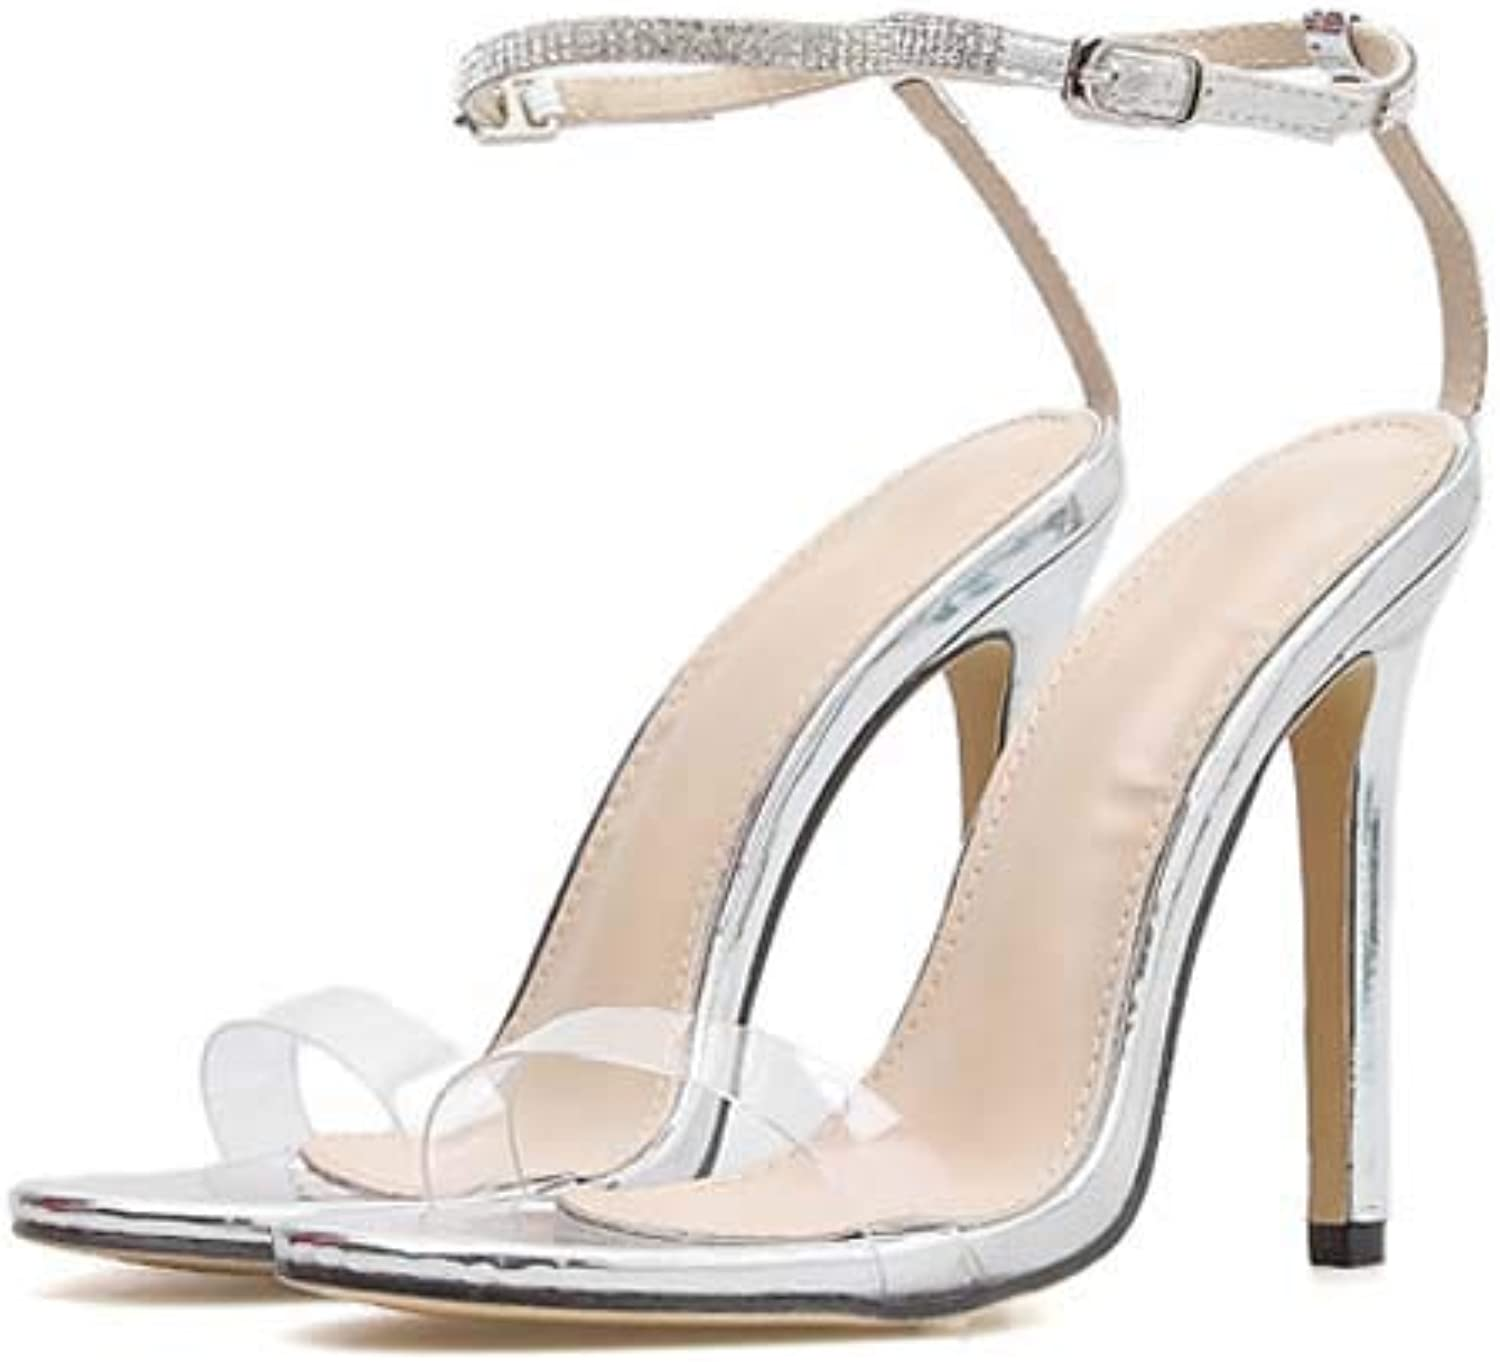 Women Diamante Sandals,Ladies high Heels Rhinestone Open Toe shoes,Wedding Party Ankle Strap Stiletto Heels Pumps